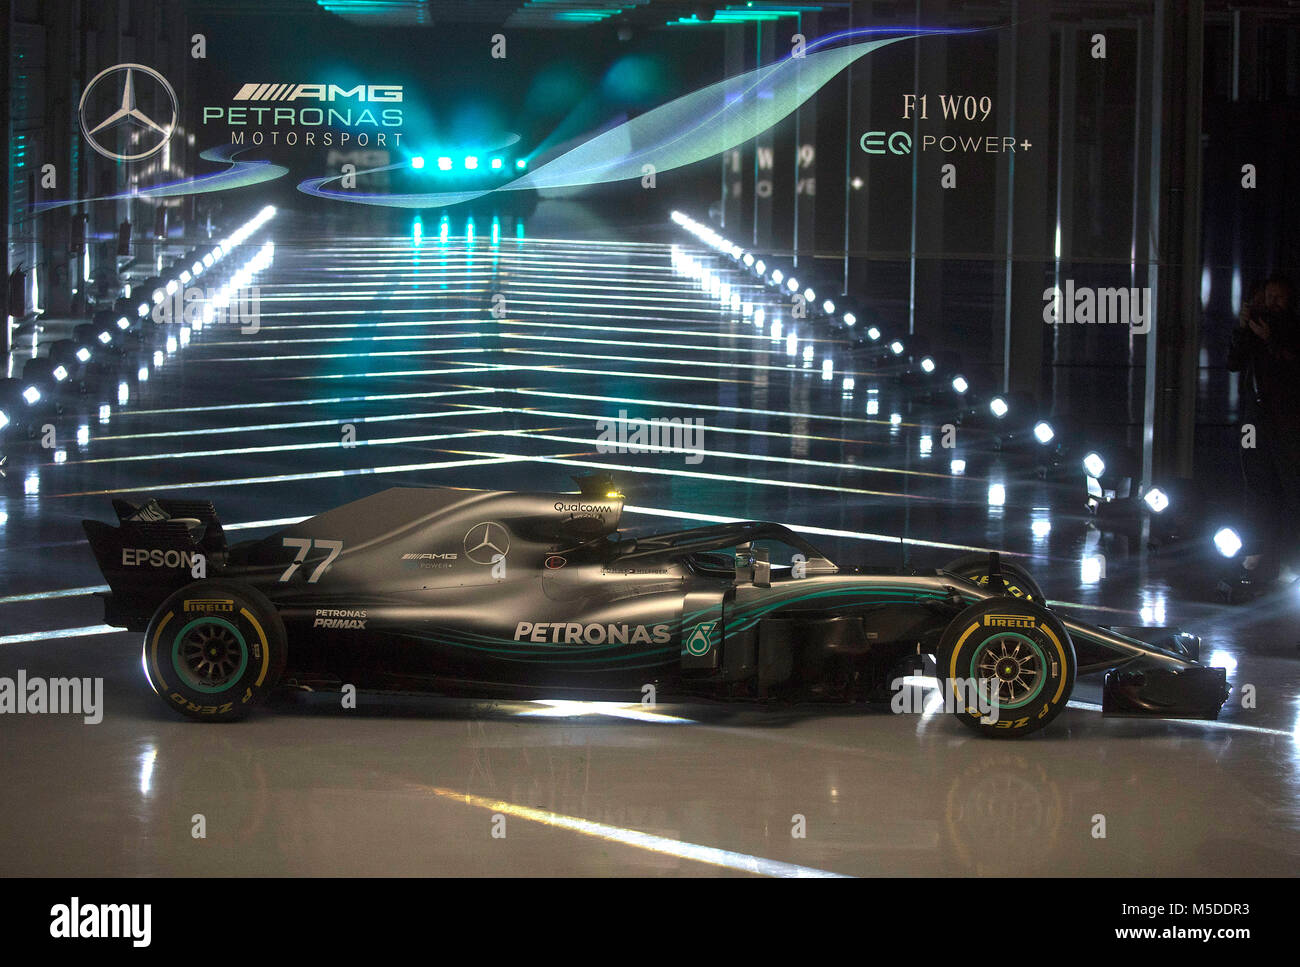 silverstone northamptonshire uk 22nd feb 2018 mercedes amg f1 stock photo 175473175 alamy. Black Bedroom Furniture Sets. Home Design Ideas